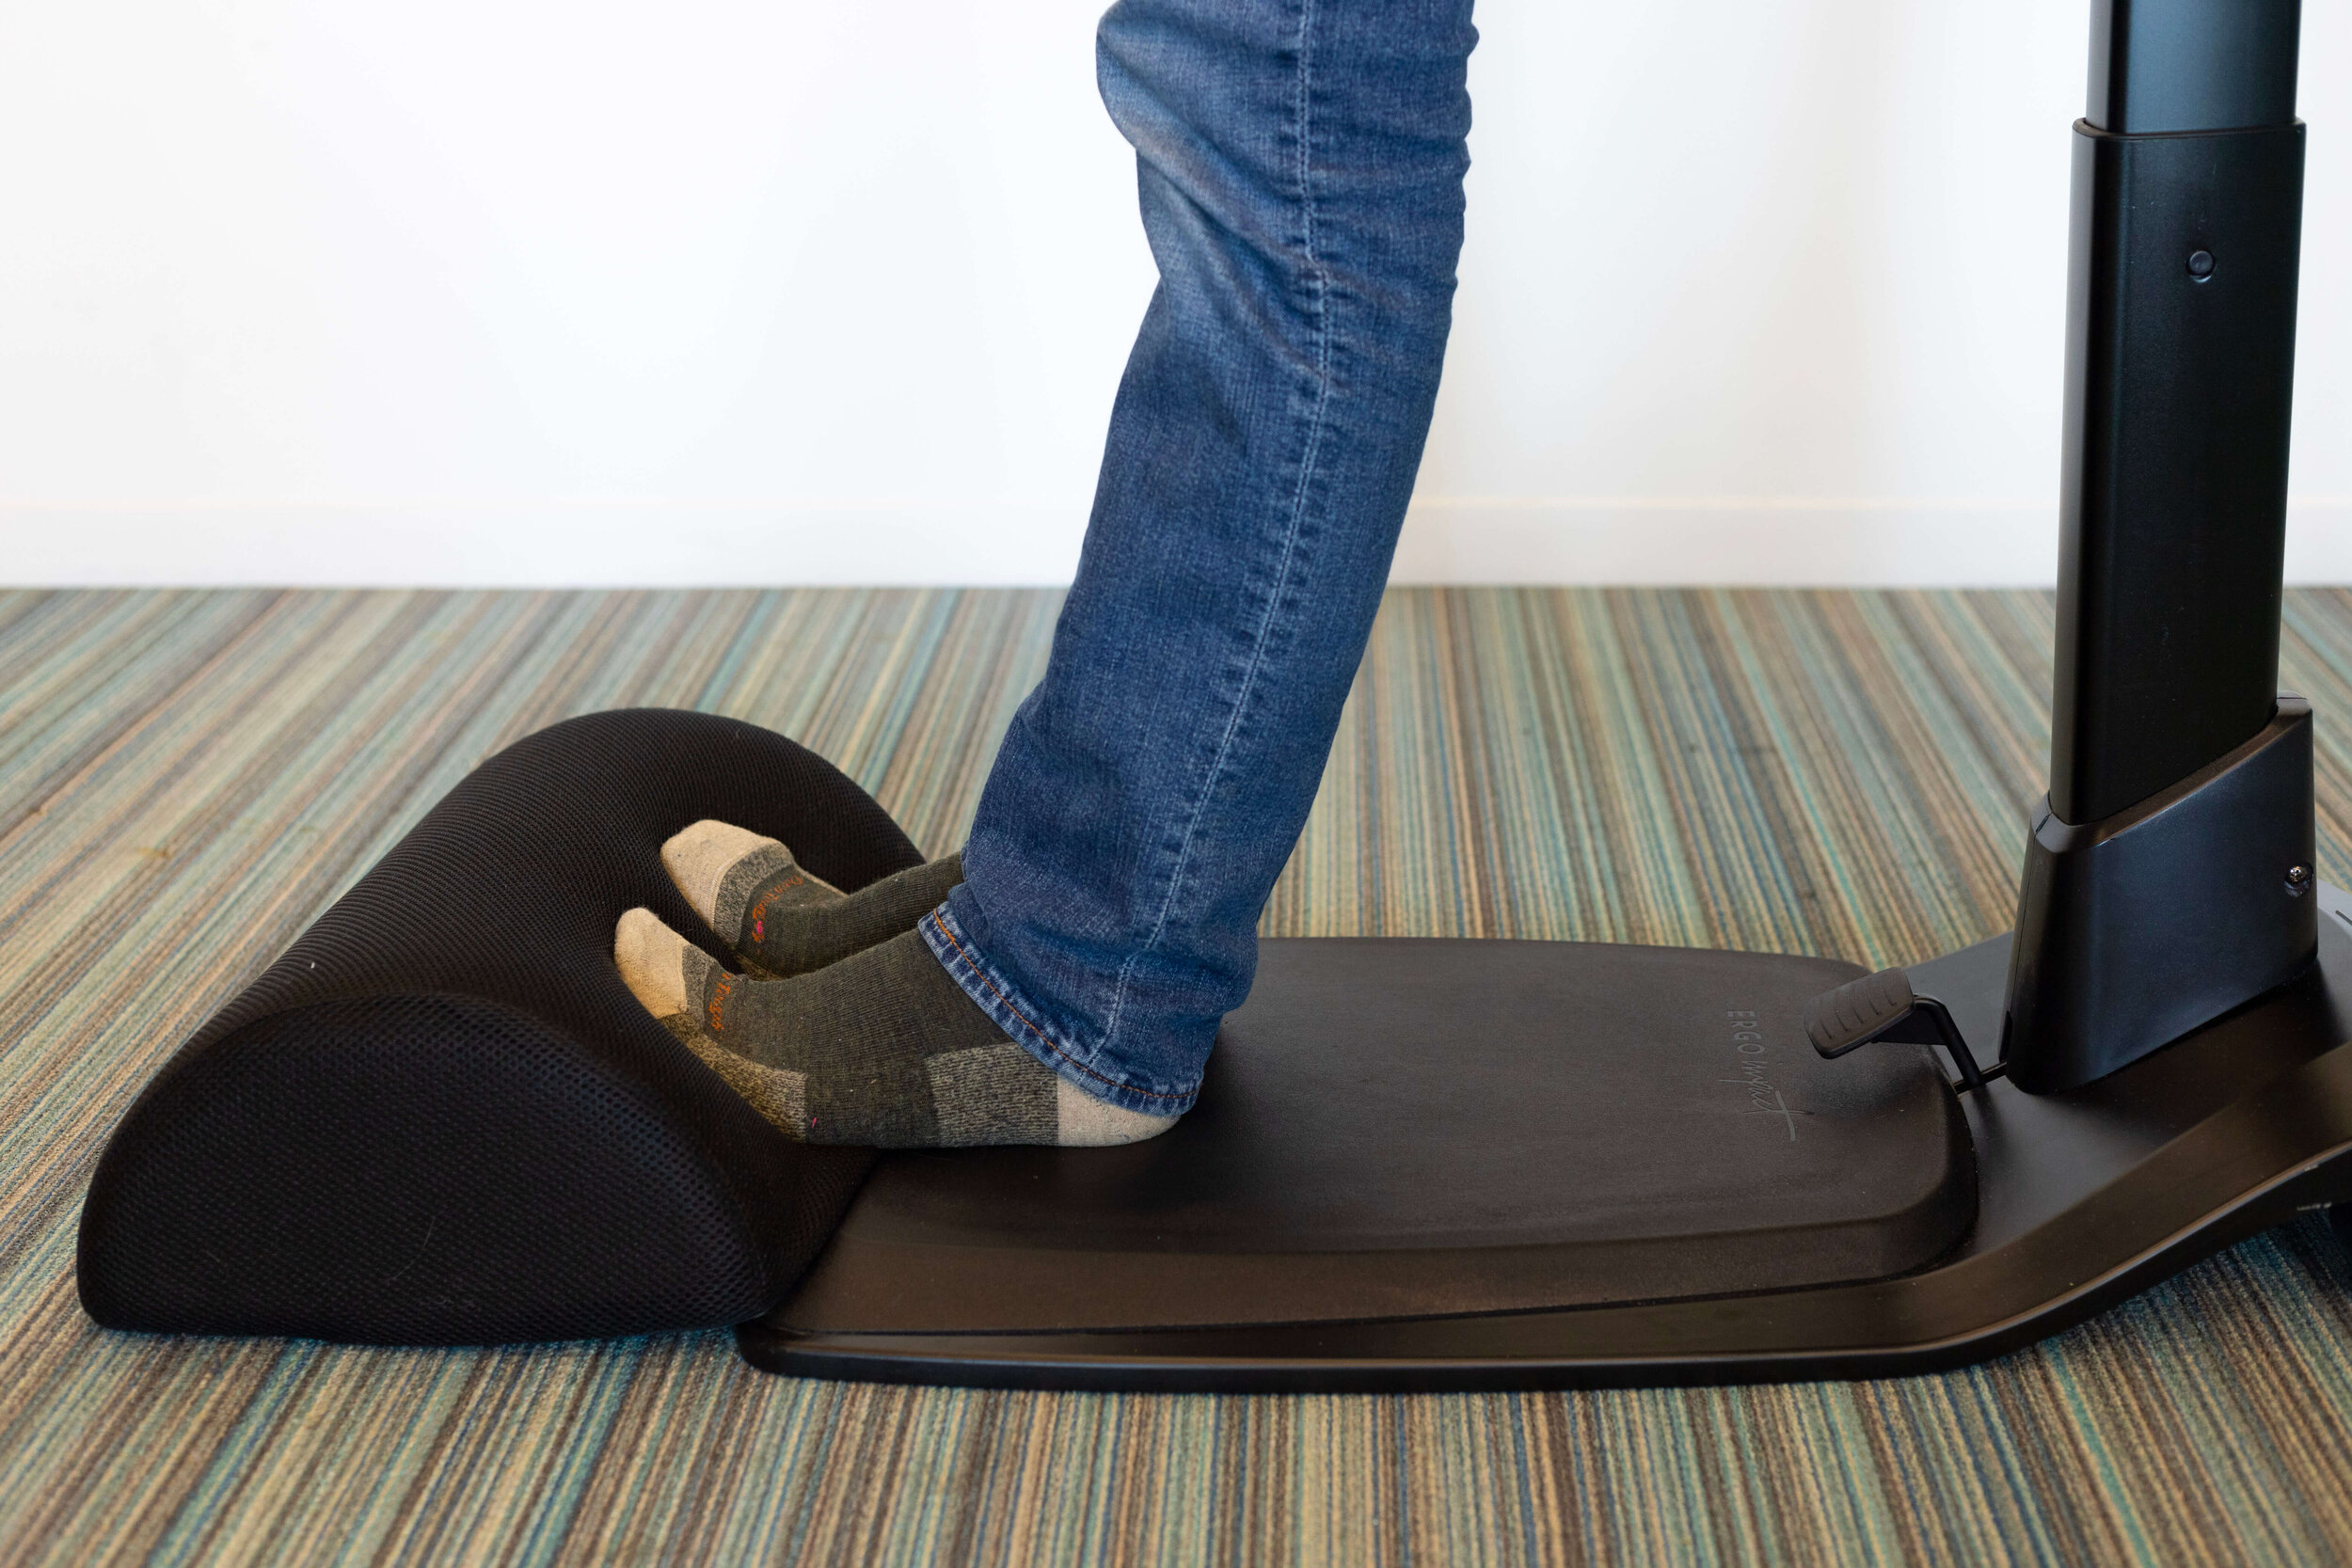 The foot cushion gives the calves a comfortable stretch while the LeanRite™ gives users fine-grain control over the distribution of weight between their feet and their glutes, helping to reduce low back pain and fatigue